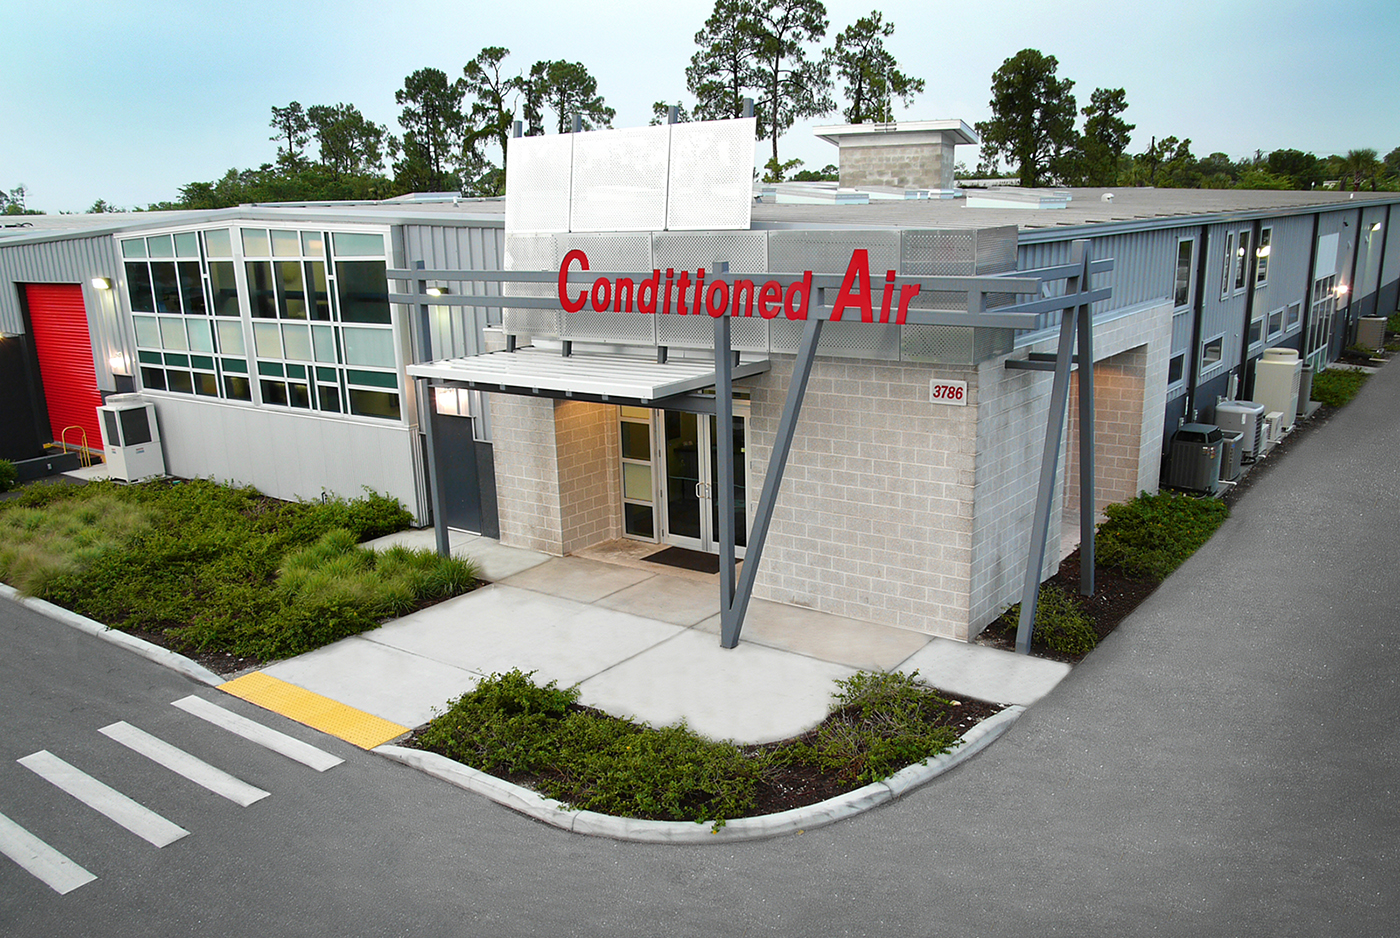 Conditioned Air Office and Warehouse